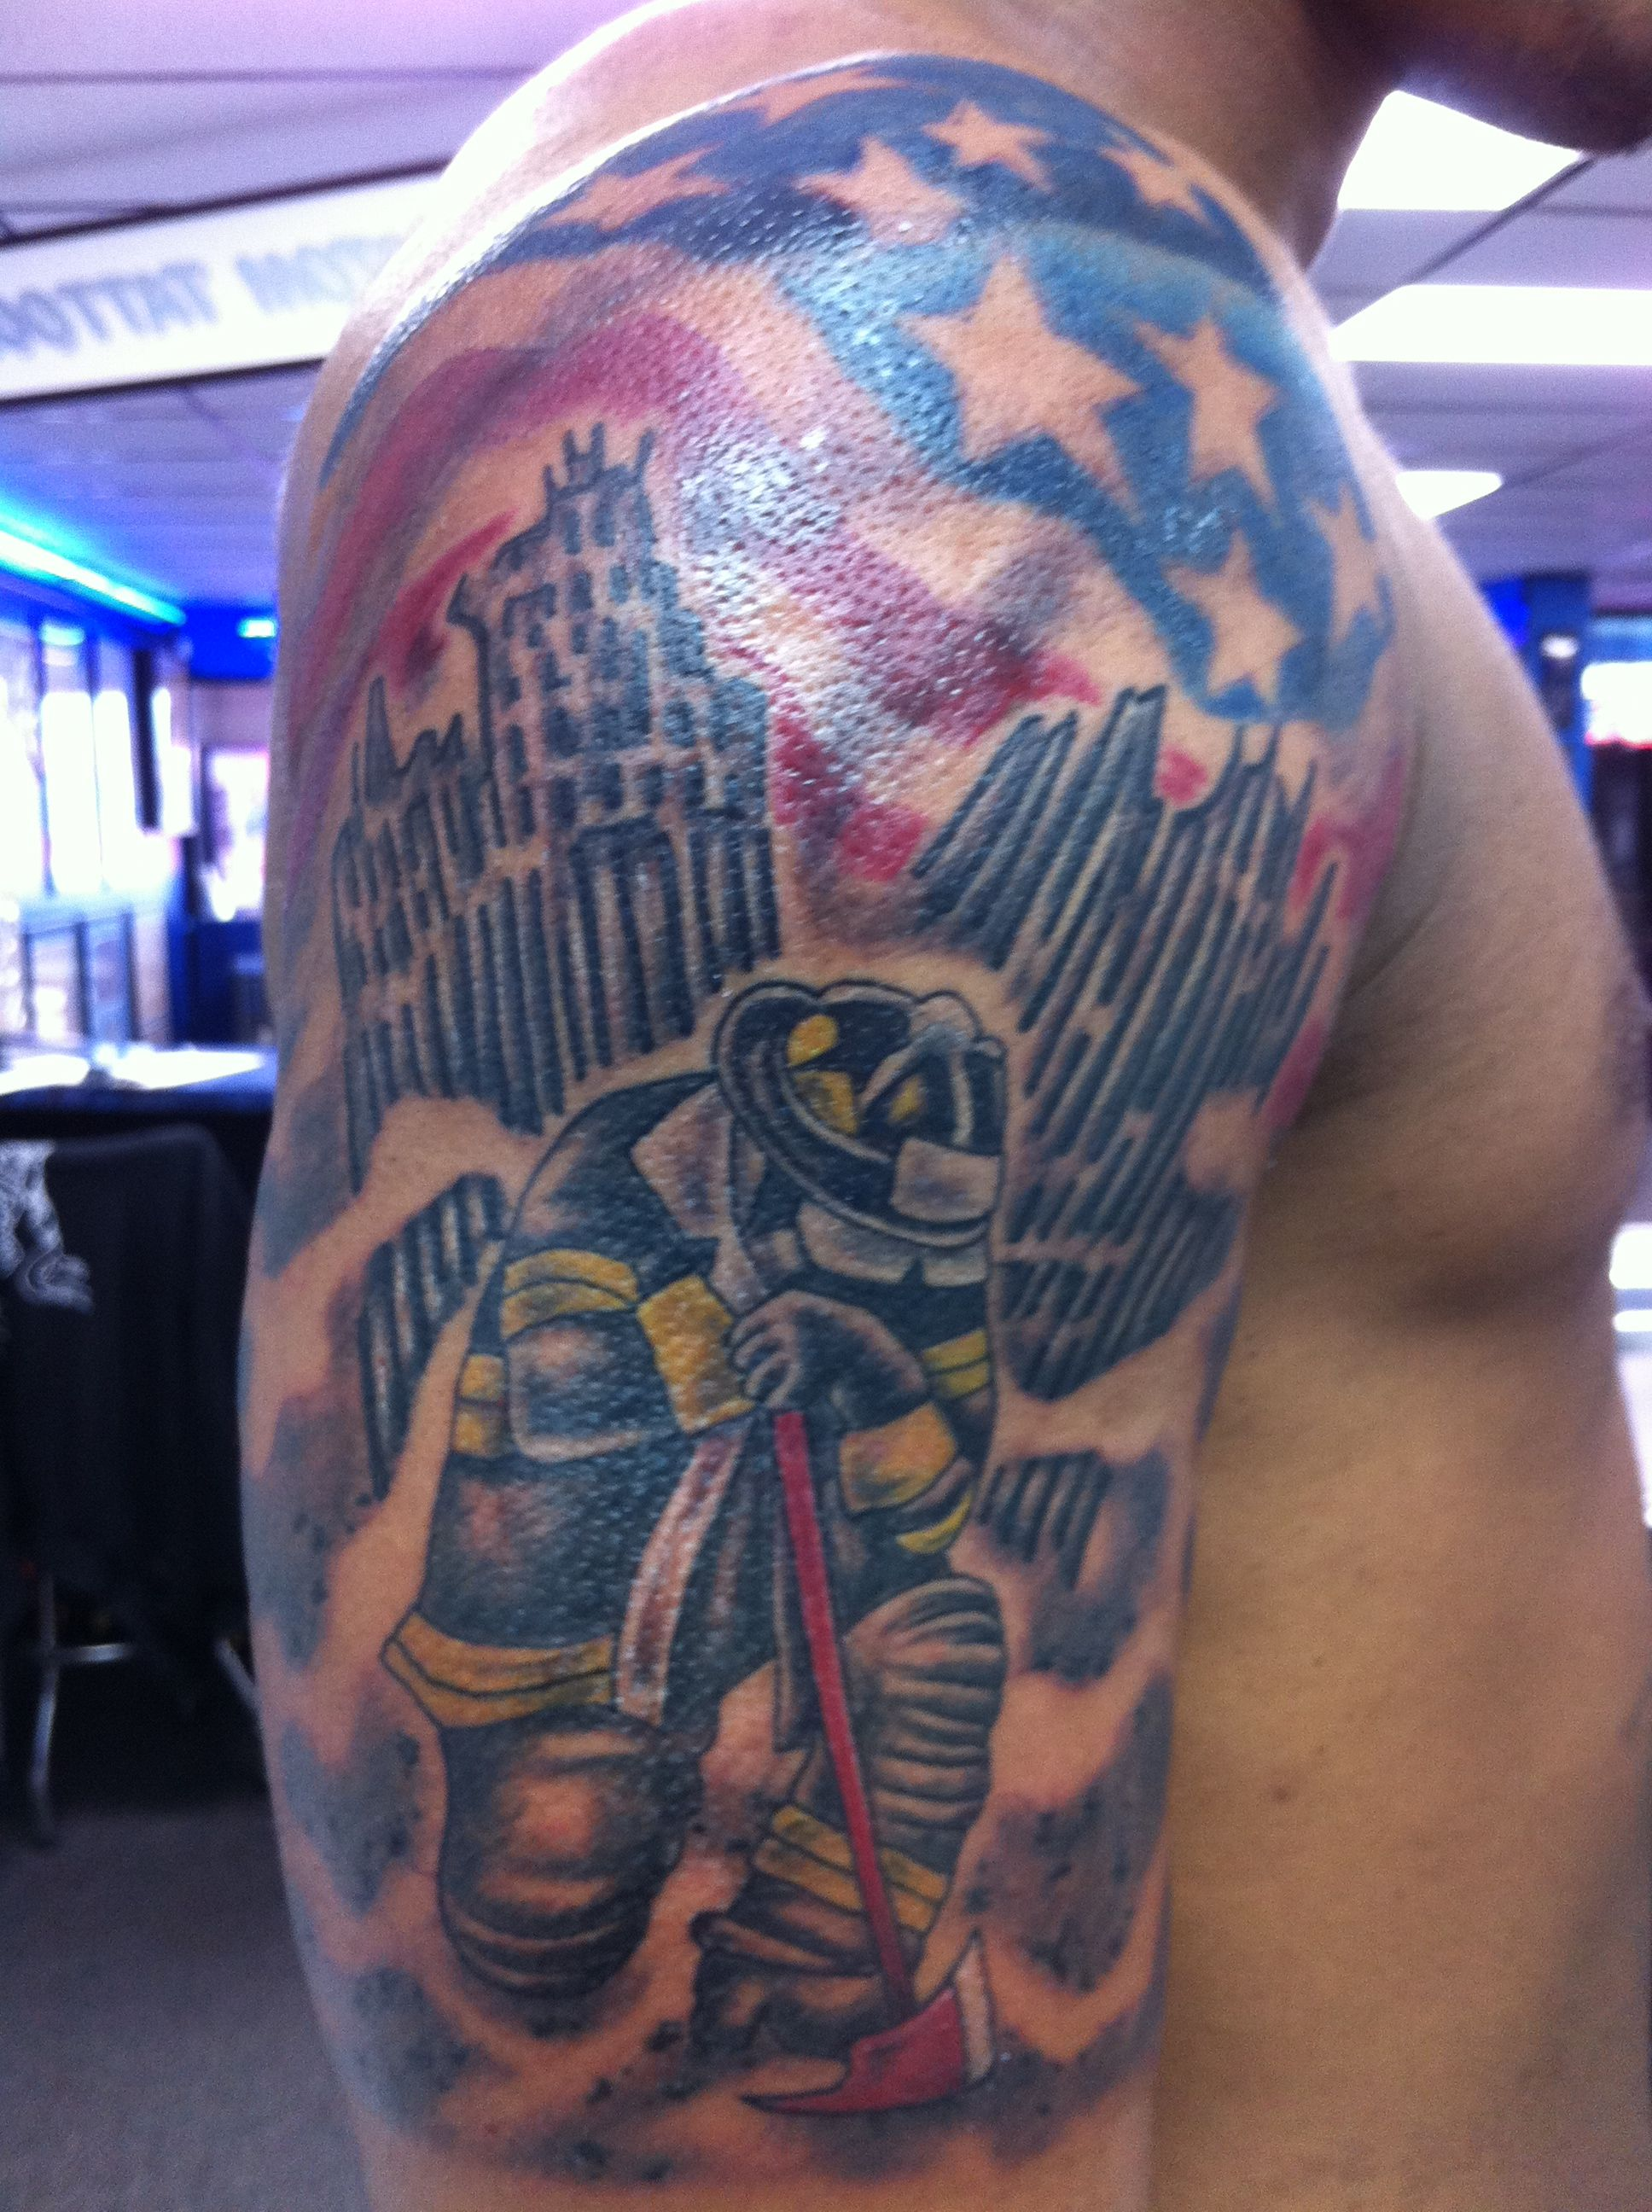 9 11 Memorial Tattoo By Joel Tattoo Charlie S Preston Hwy Louisville Ky Tattoos By Joel Ideas And Designs